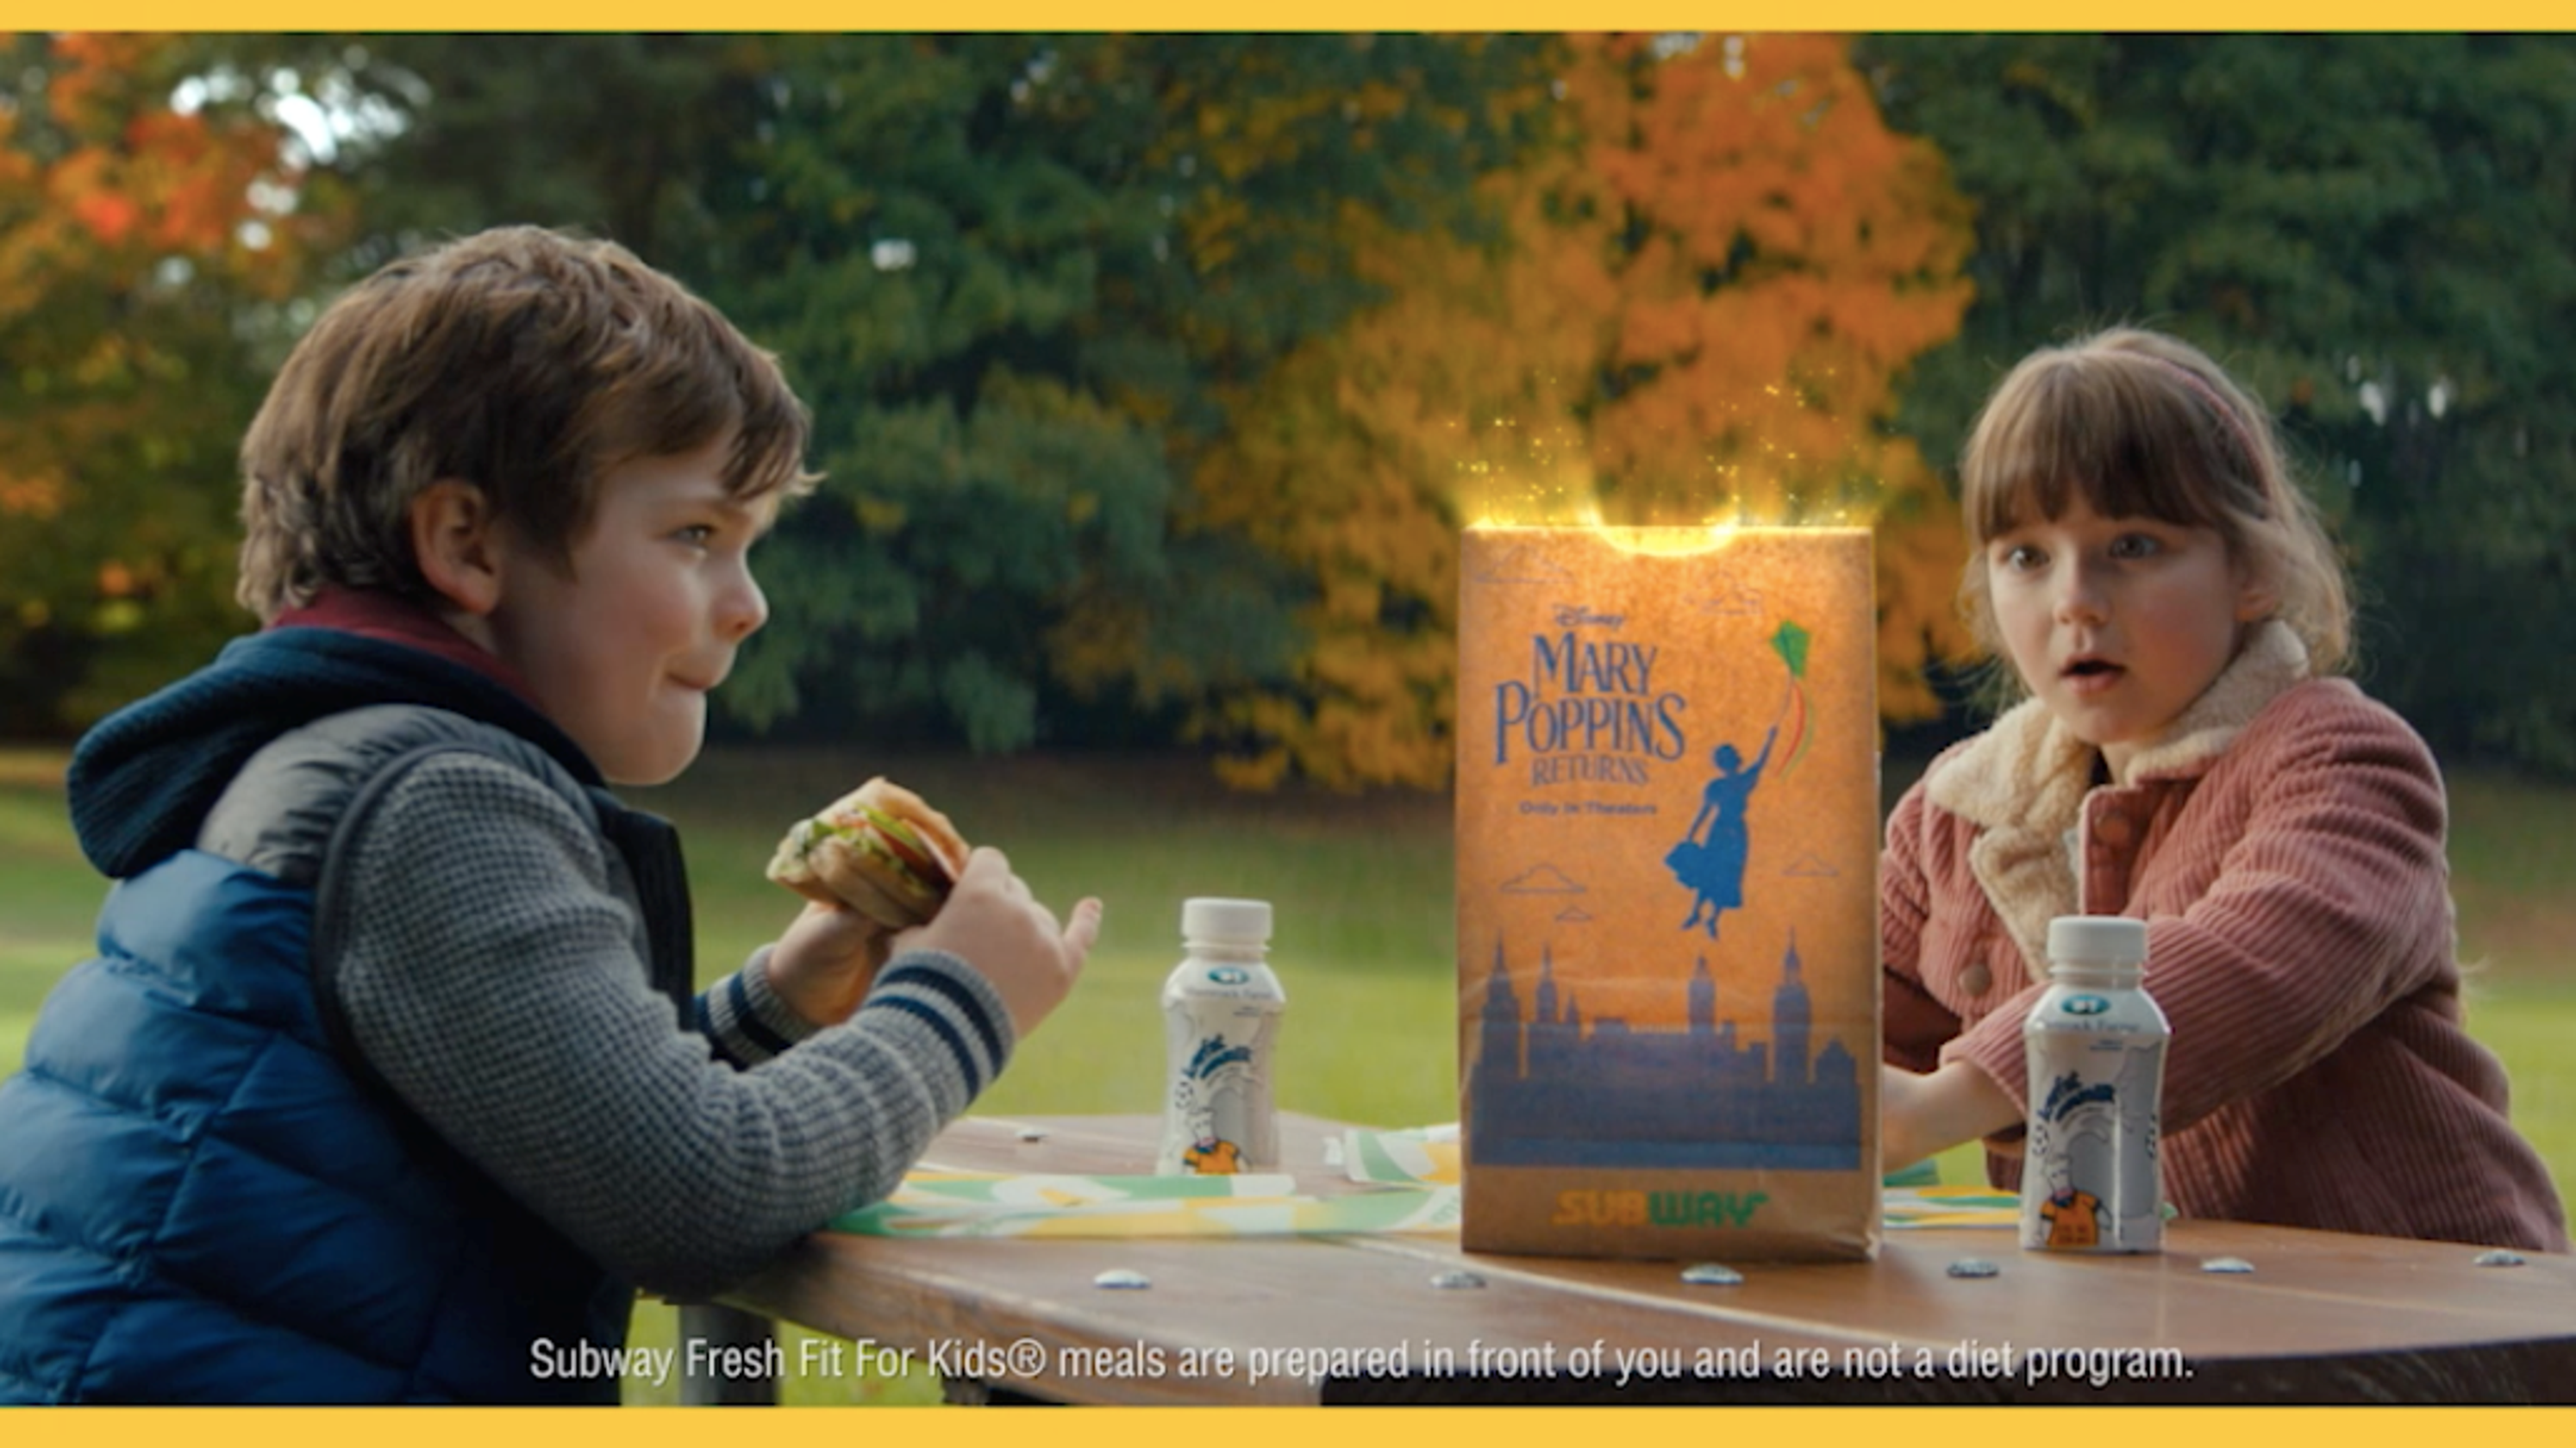 Subway Kids Meals Come With Free Mary Poppins Returns Tickets